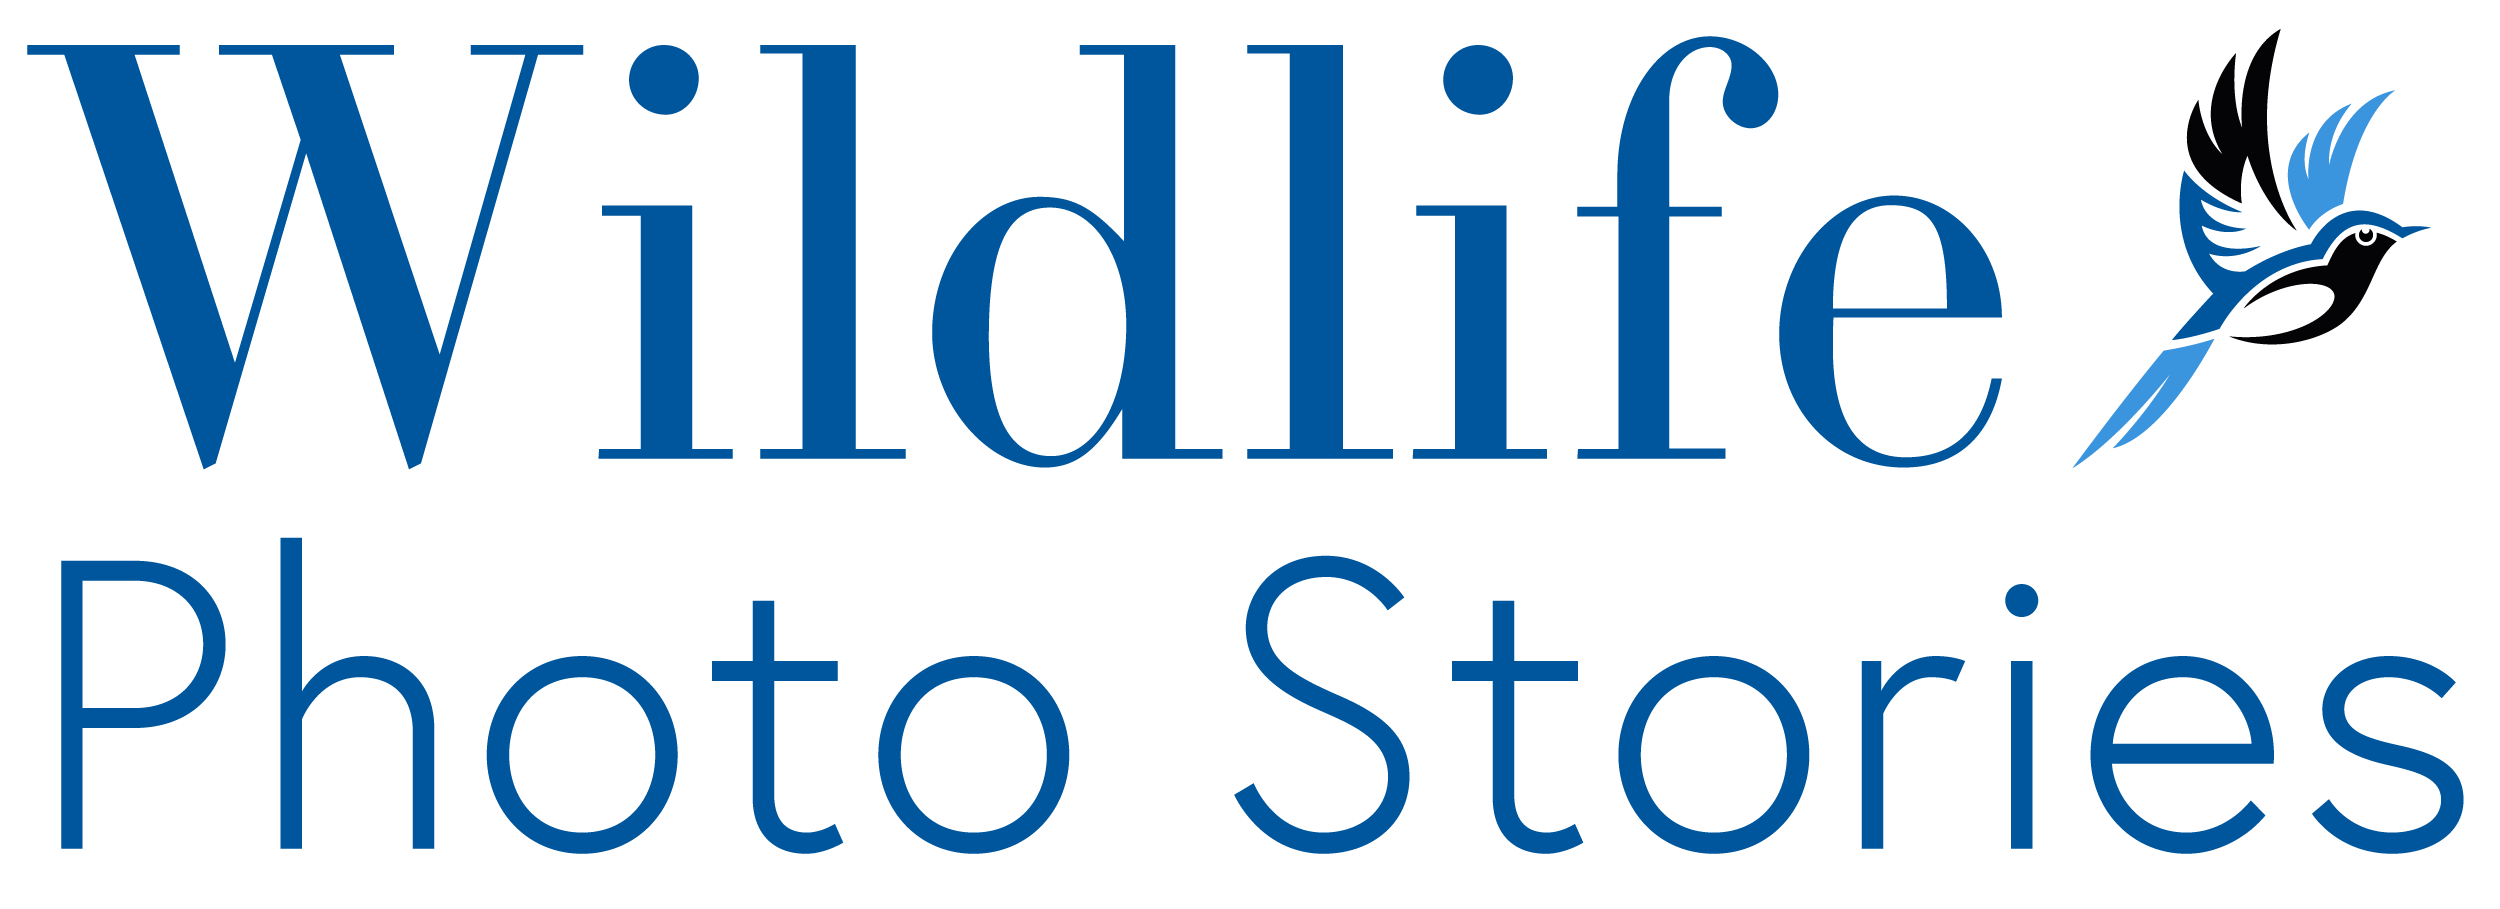 WIldlife-Photo-Stories-Logo-Large.png